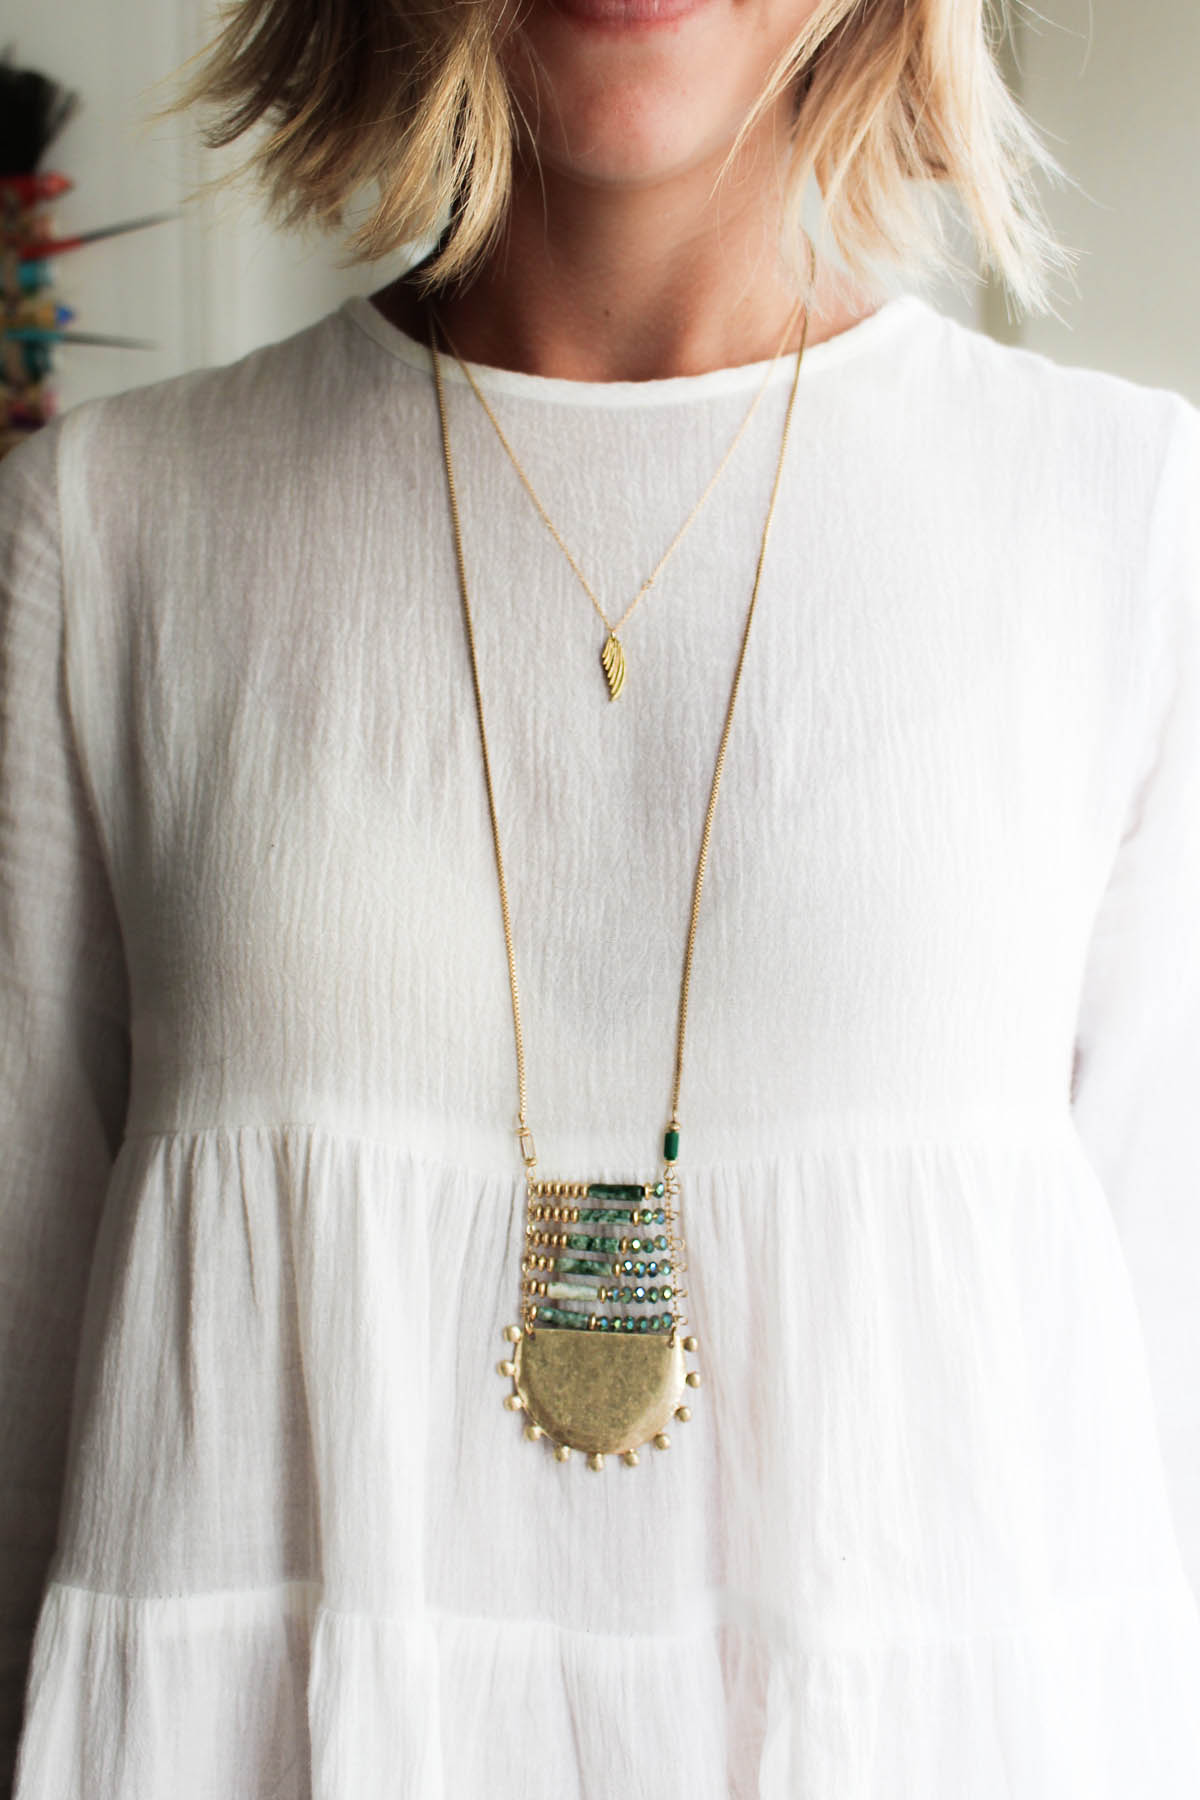 how to layer necklaces with a bohemian style